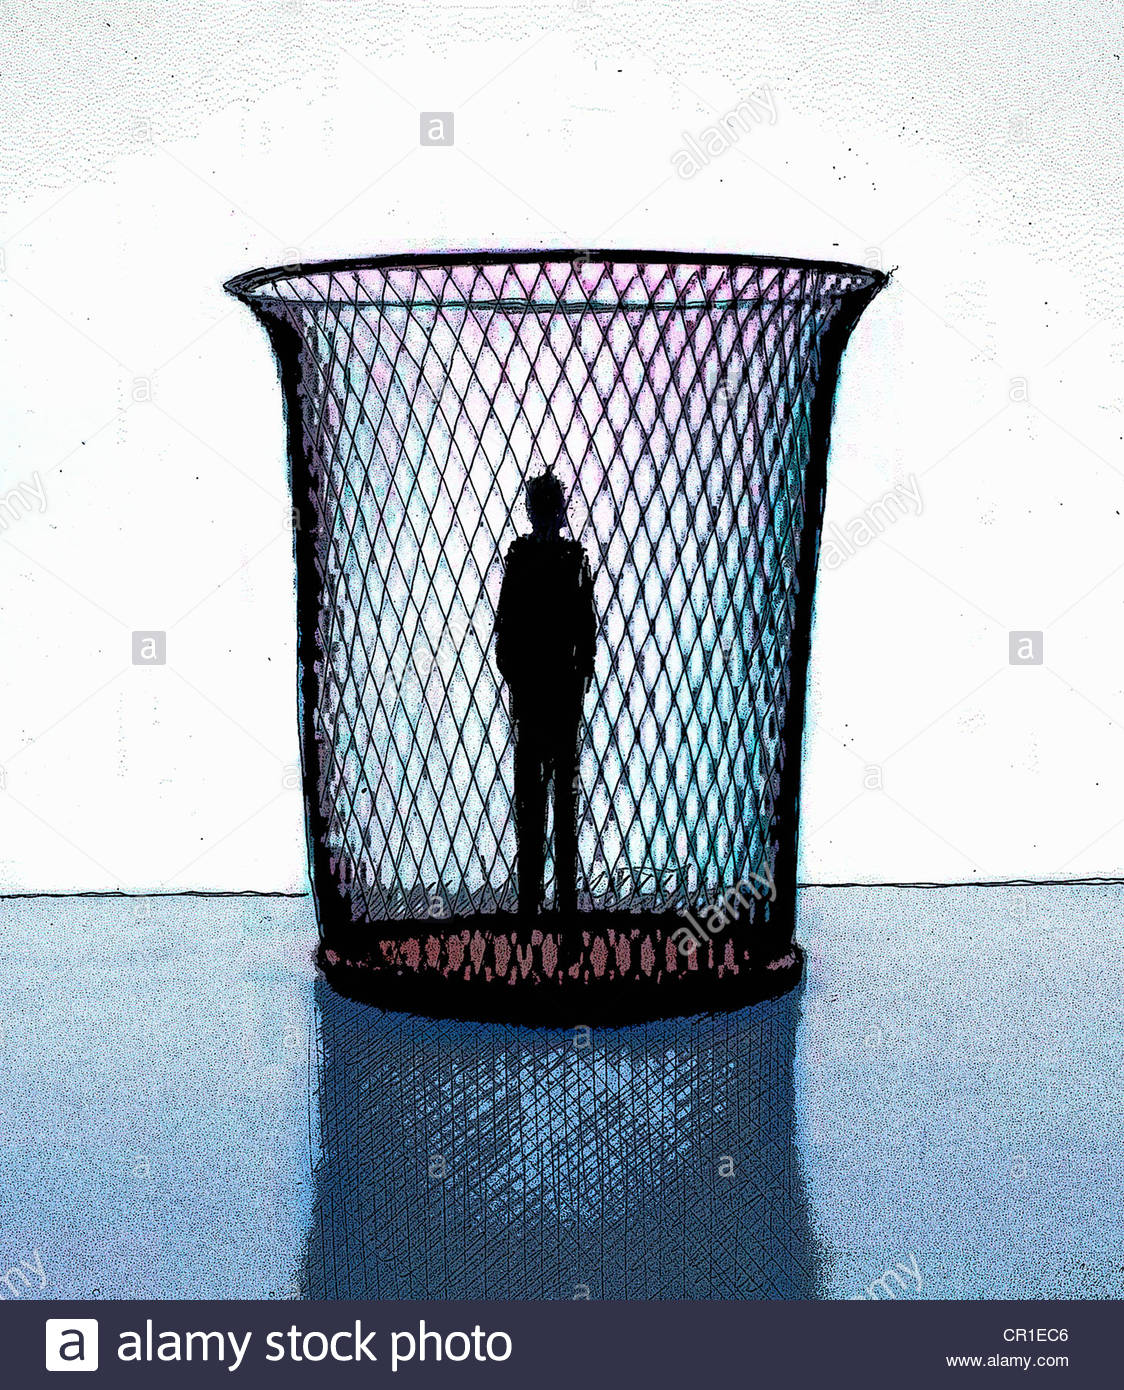 Silhouette of man standing in wastepaper basket - Stock Image